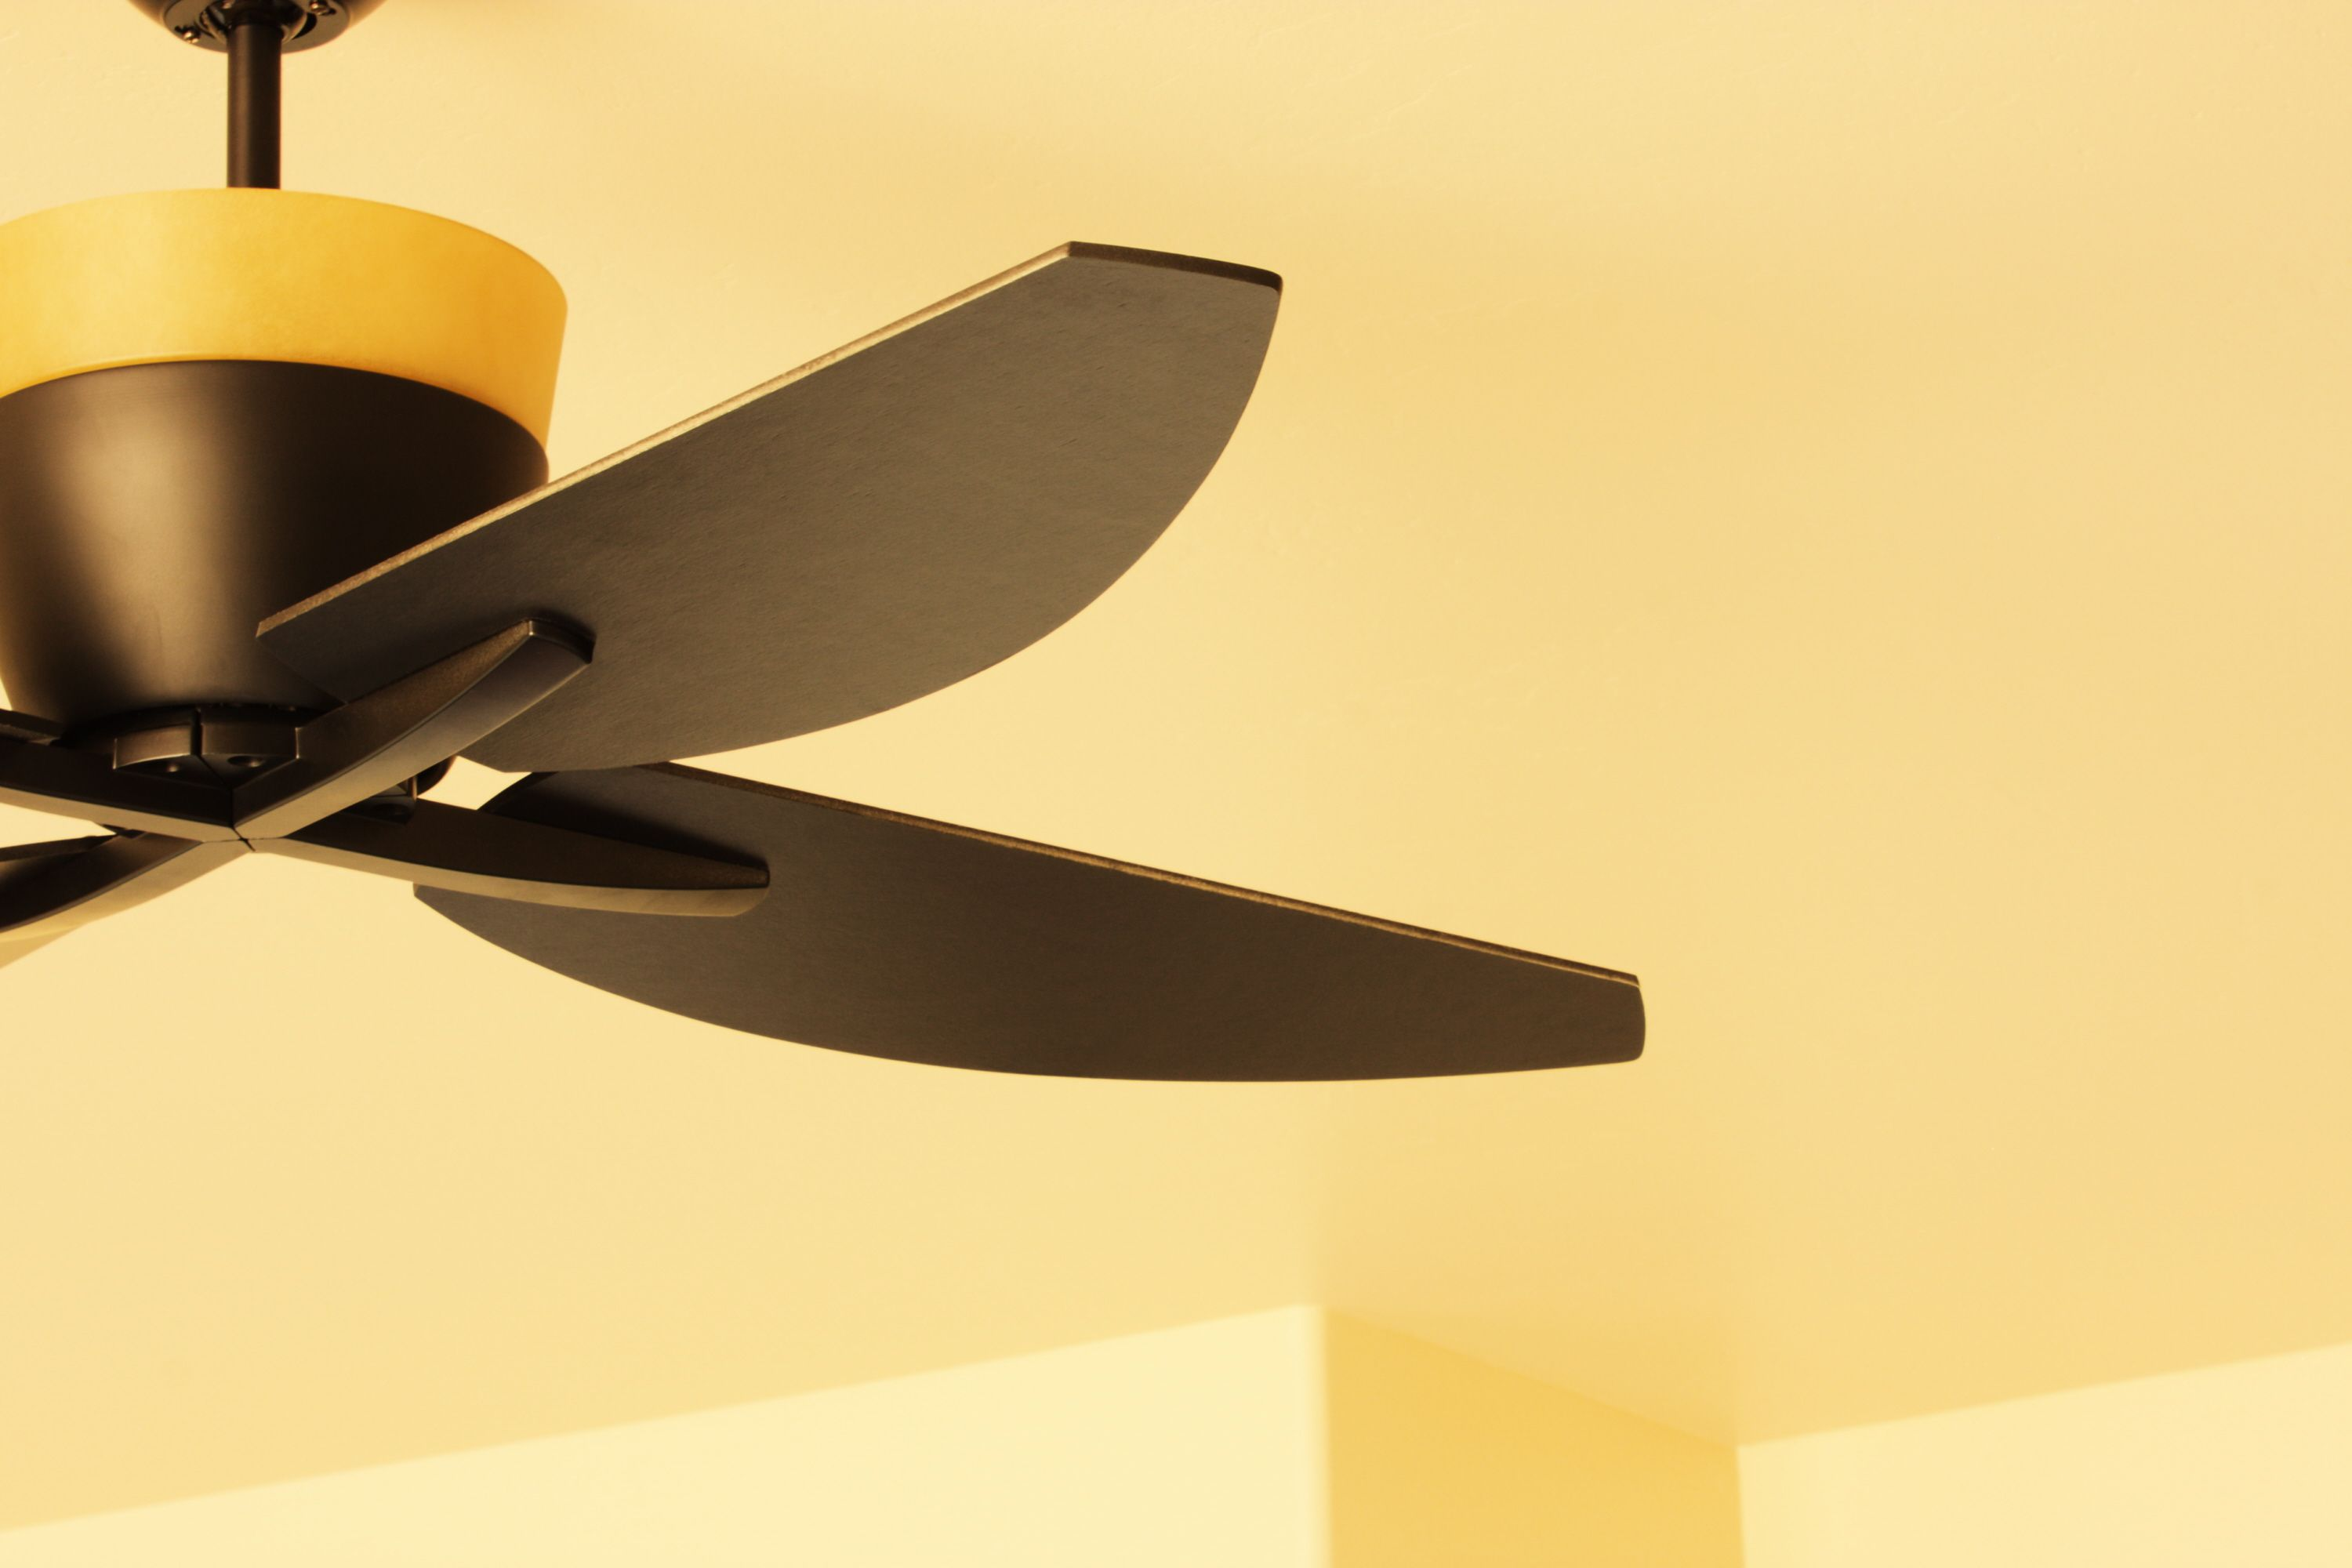 Ceiling Fan BladeBalancing Kits to Reduce Wobble